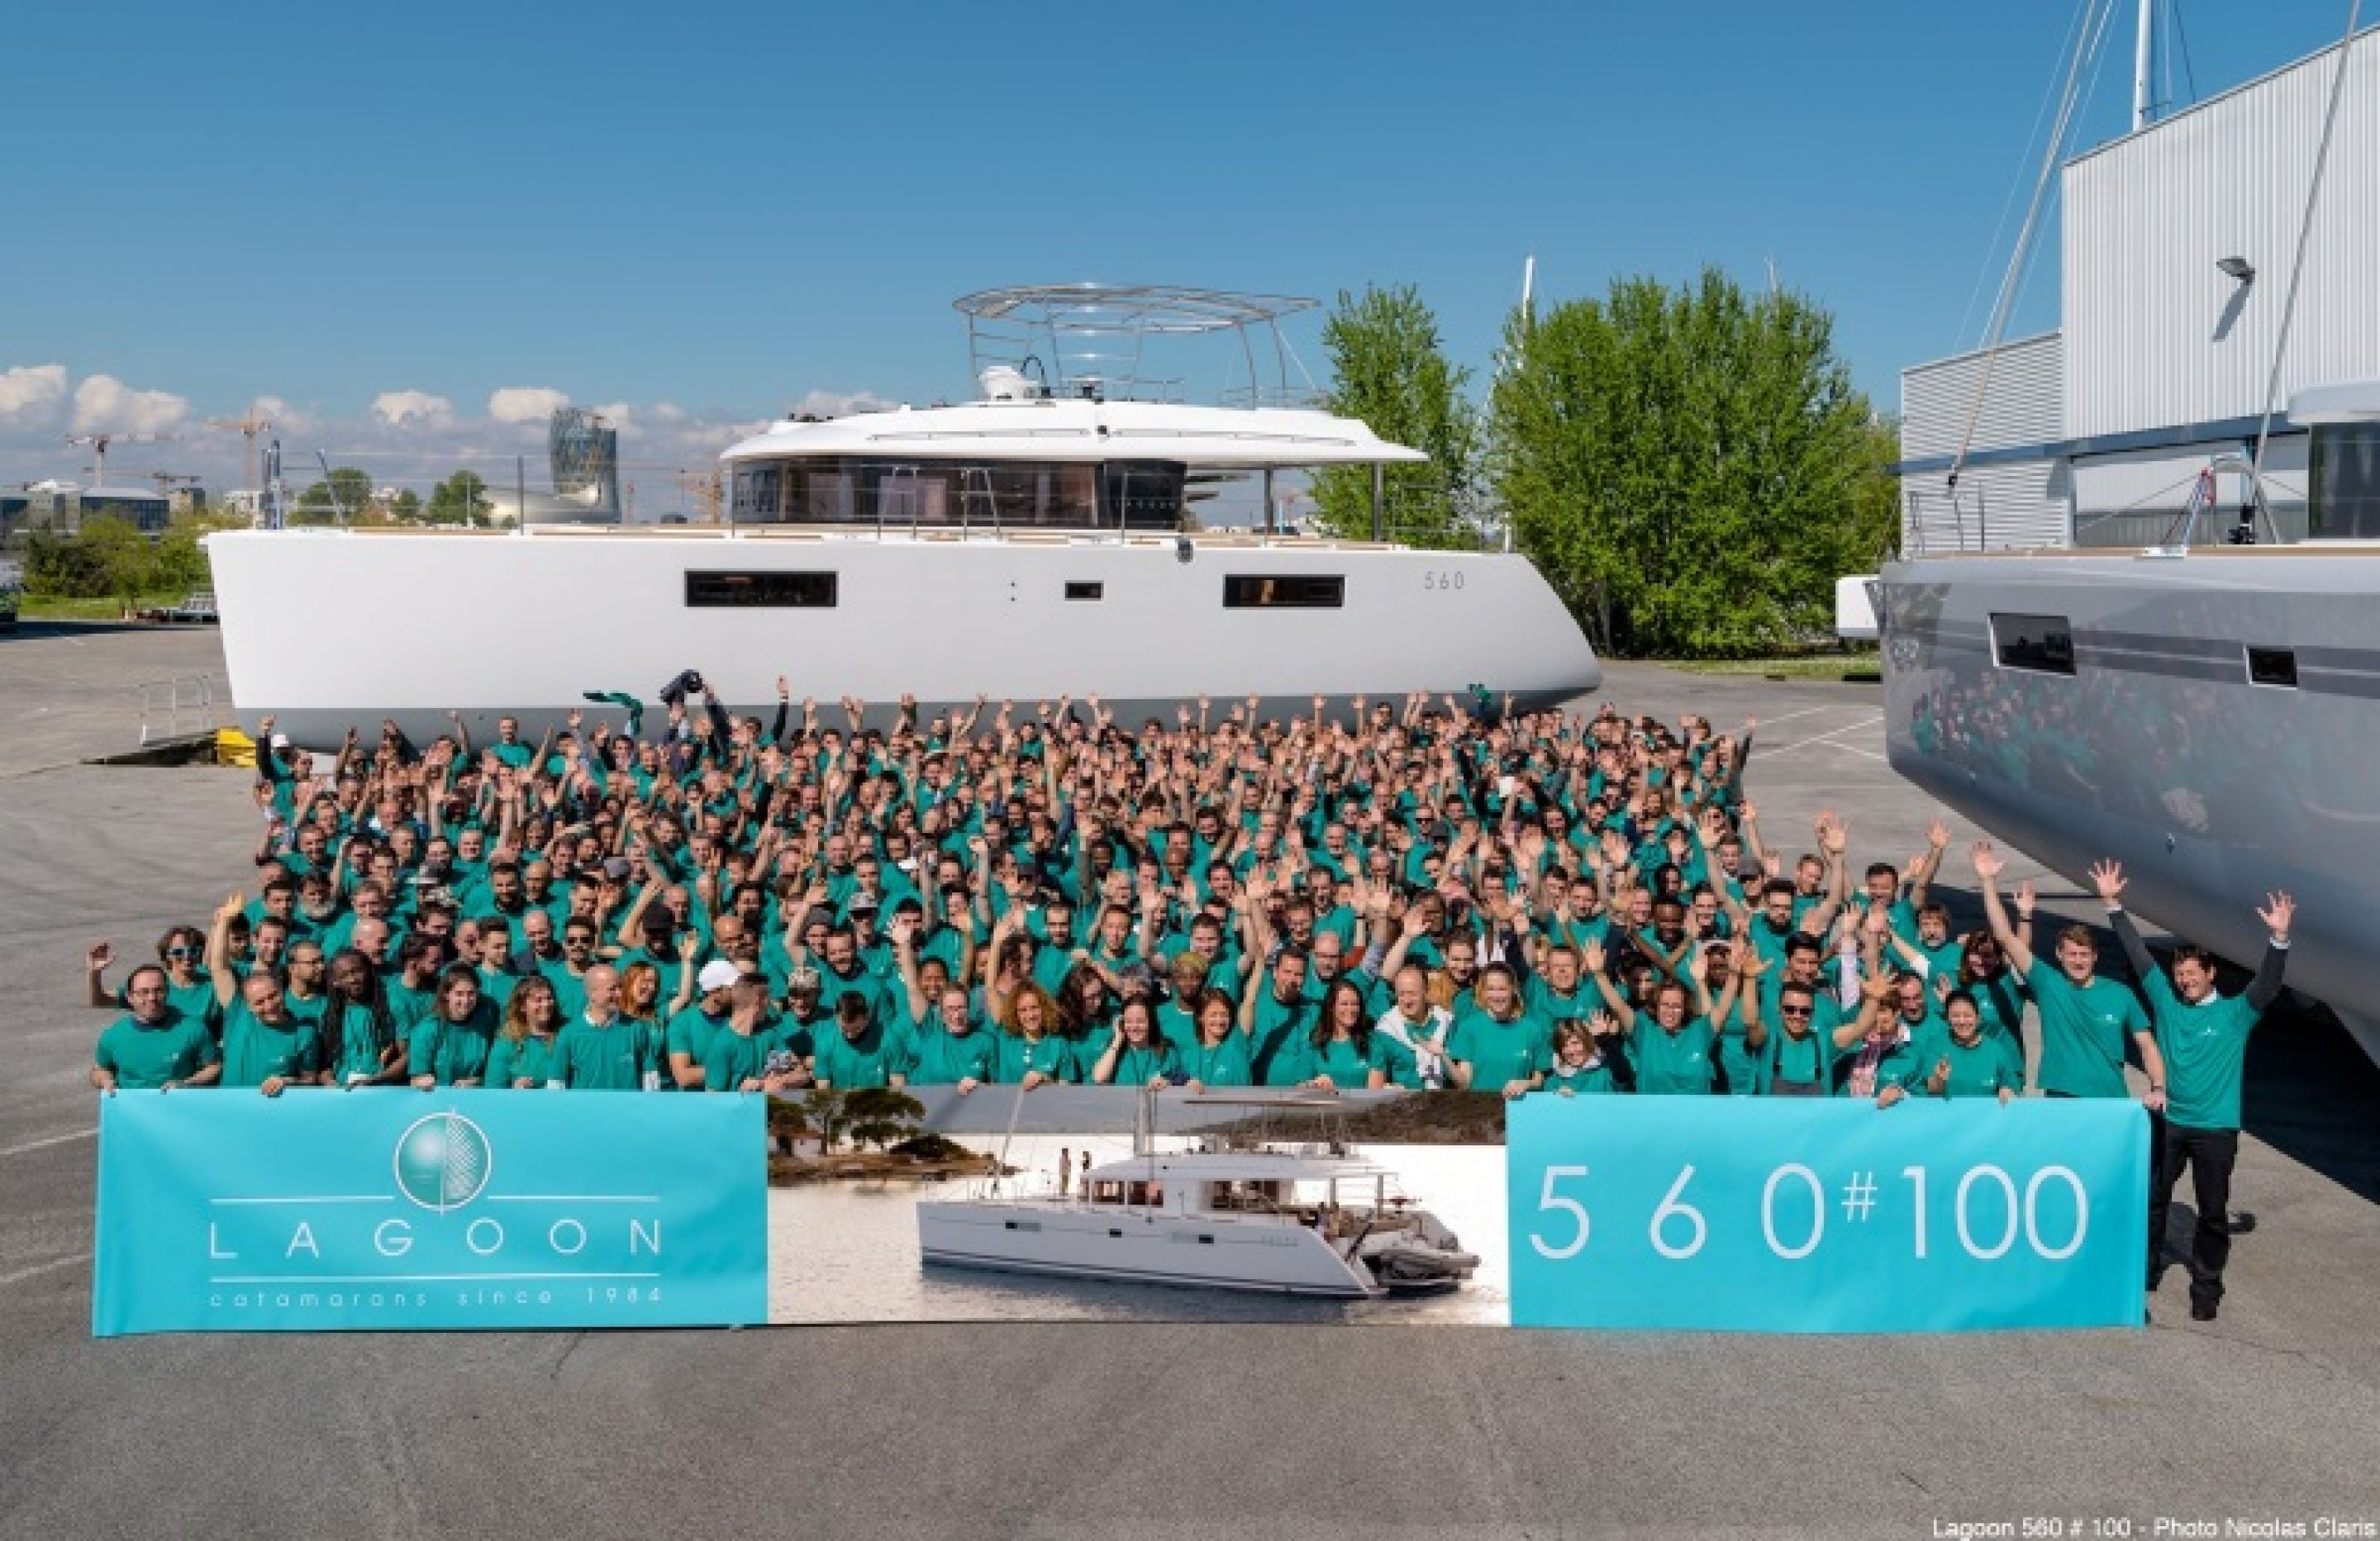 The 560: the 100th hull comes out of the yard!